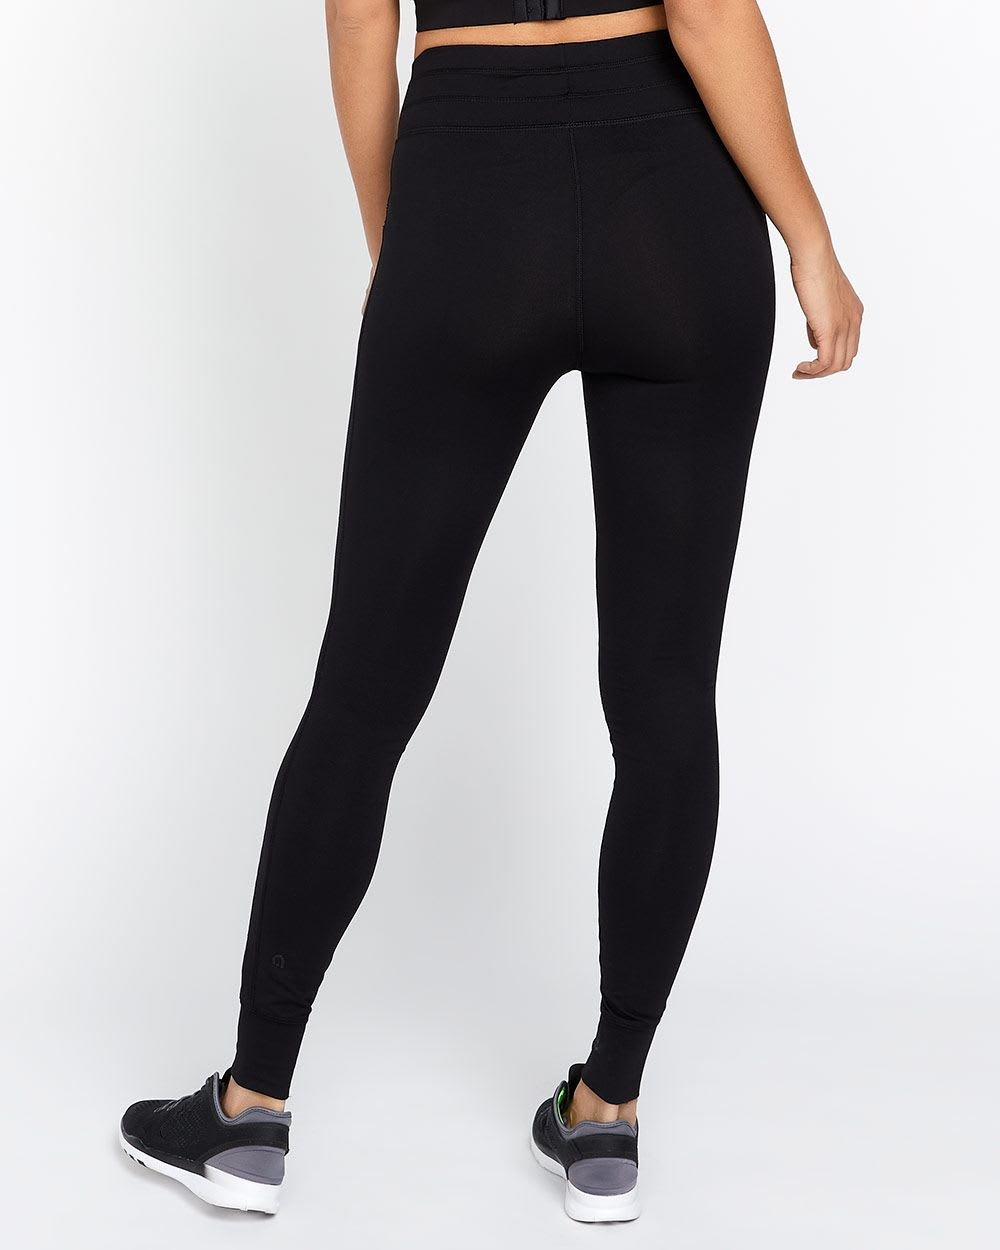 Hyba Cuffed Legging